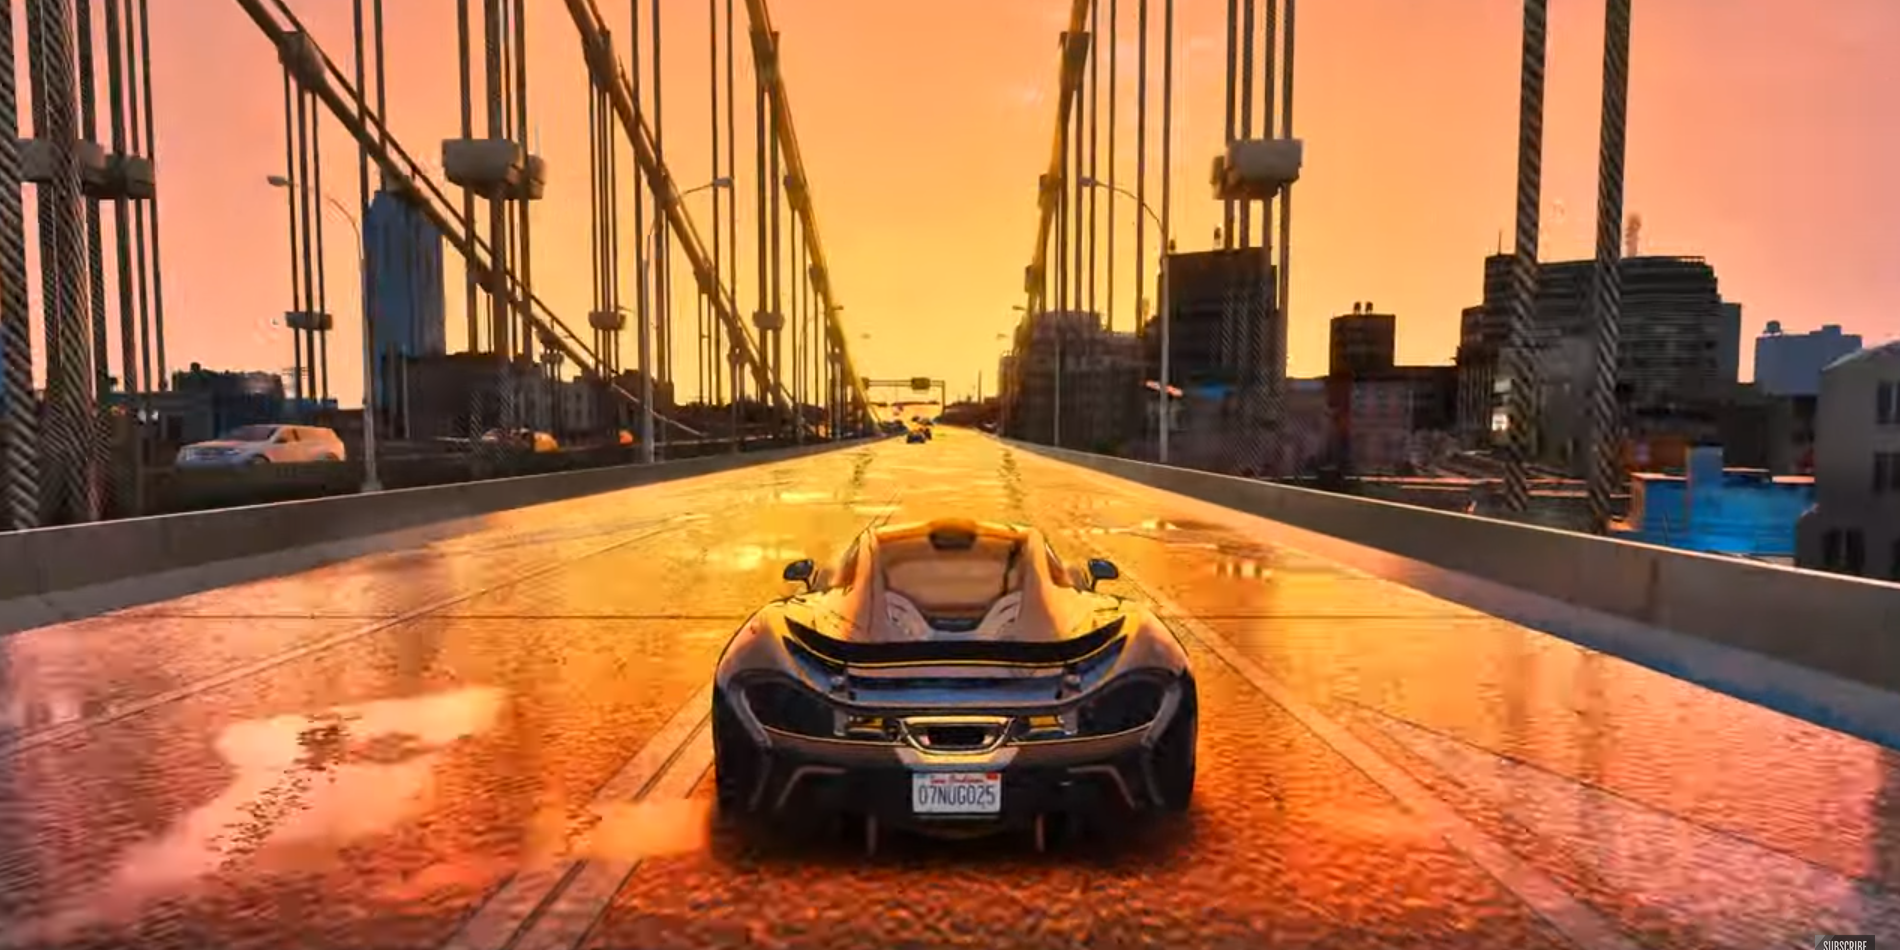 Grand Theft Auto 4 Ray Tracing Mod Upgrades Game Visuals ...